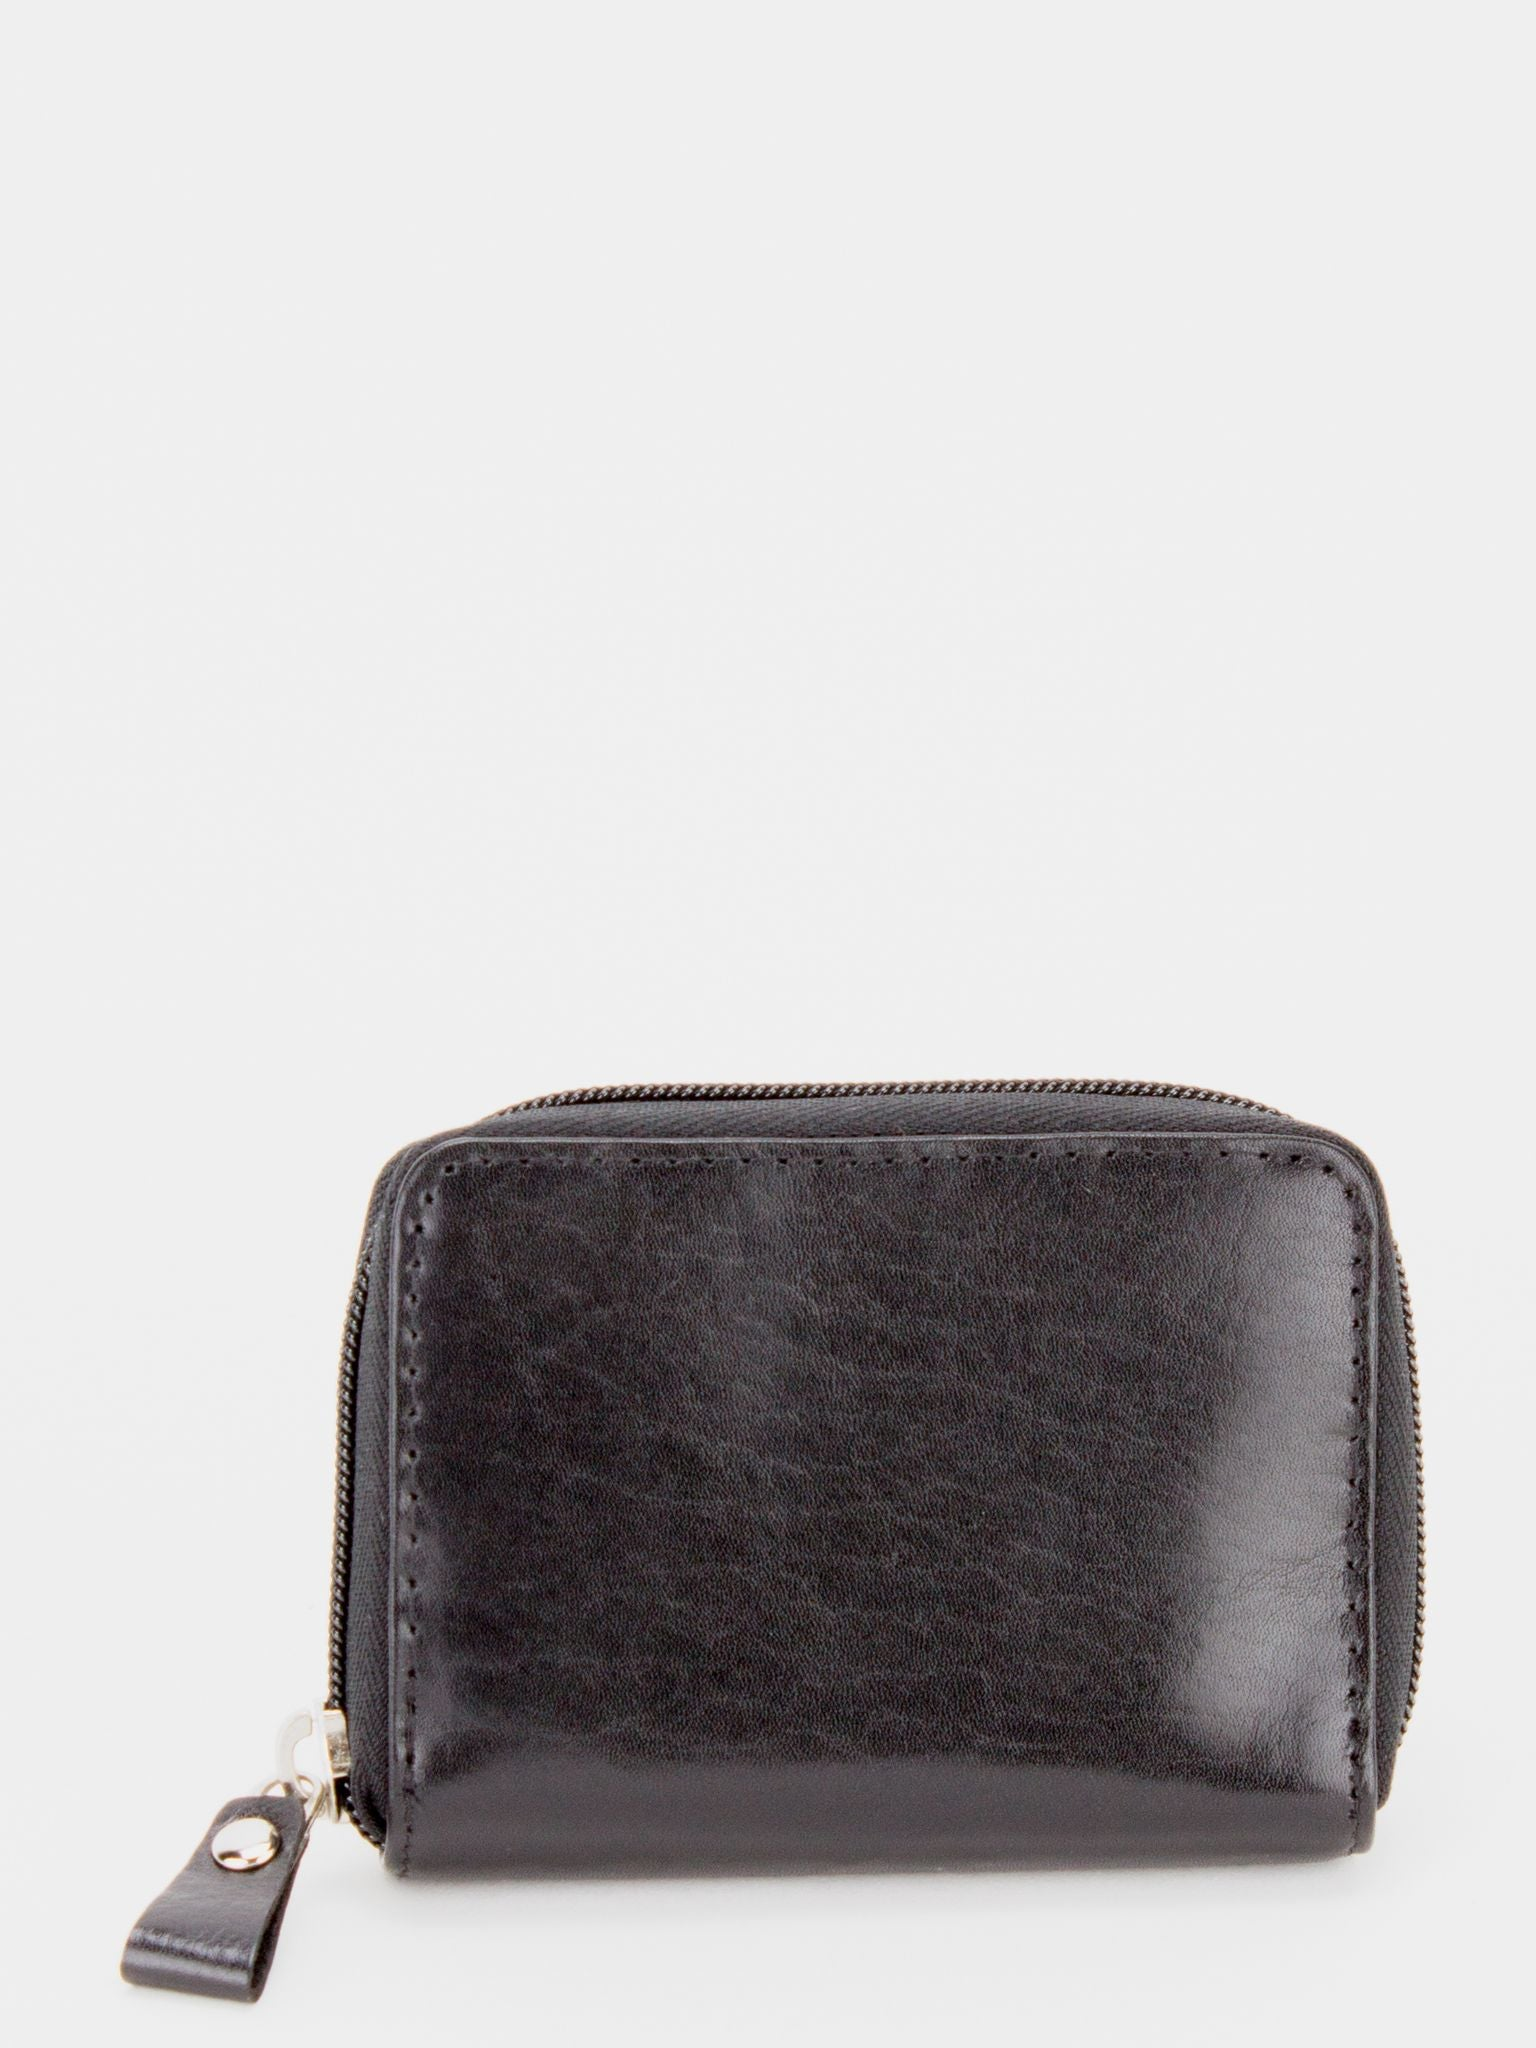 Cherry Glazed Leather Accordion Card Holder - Black